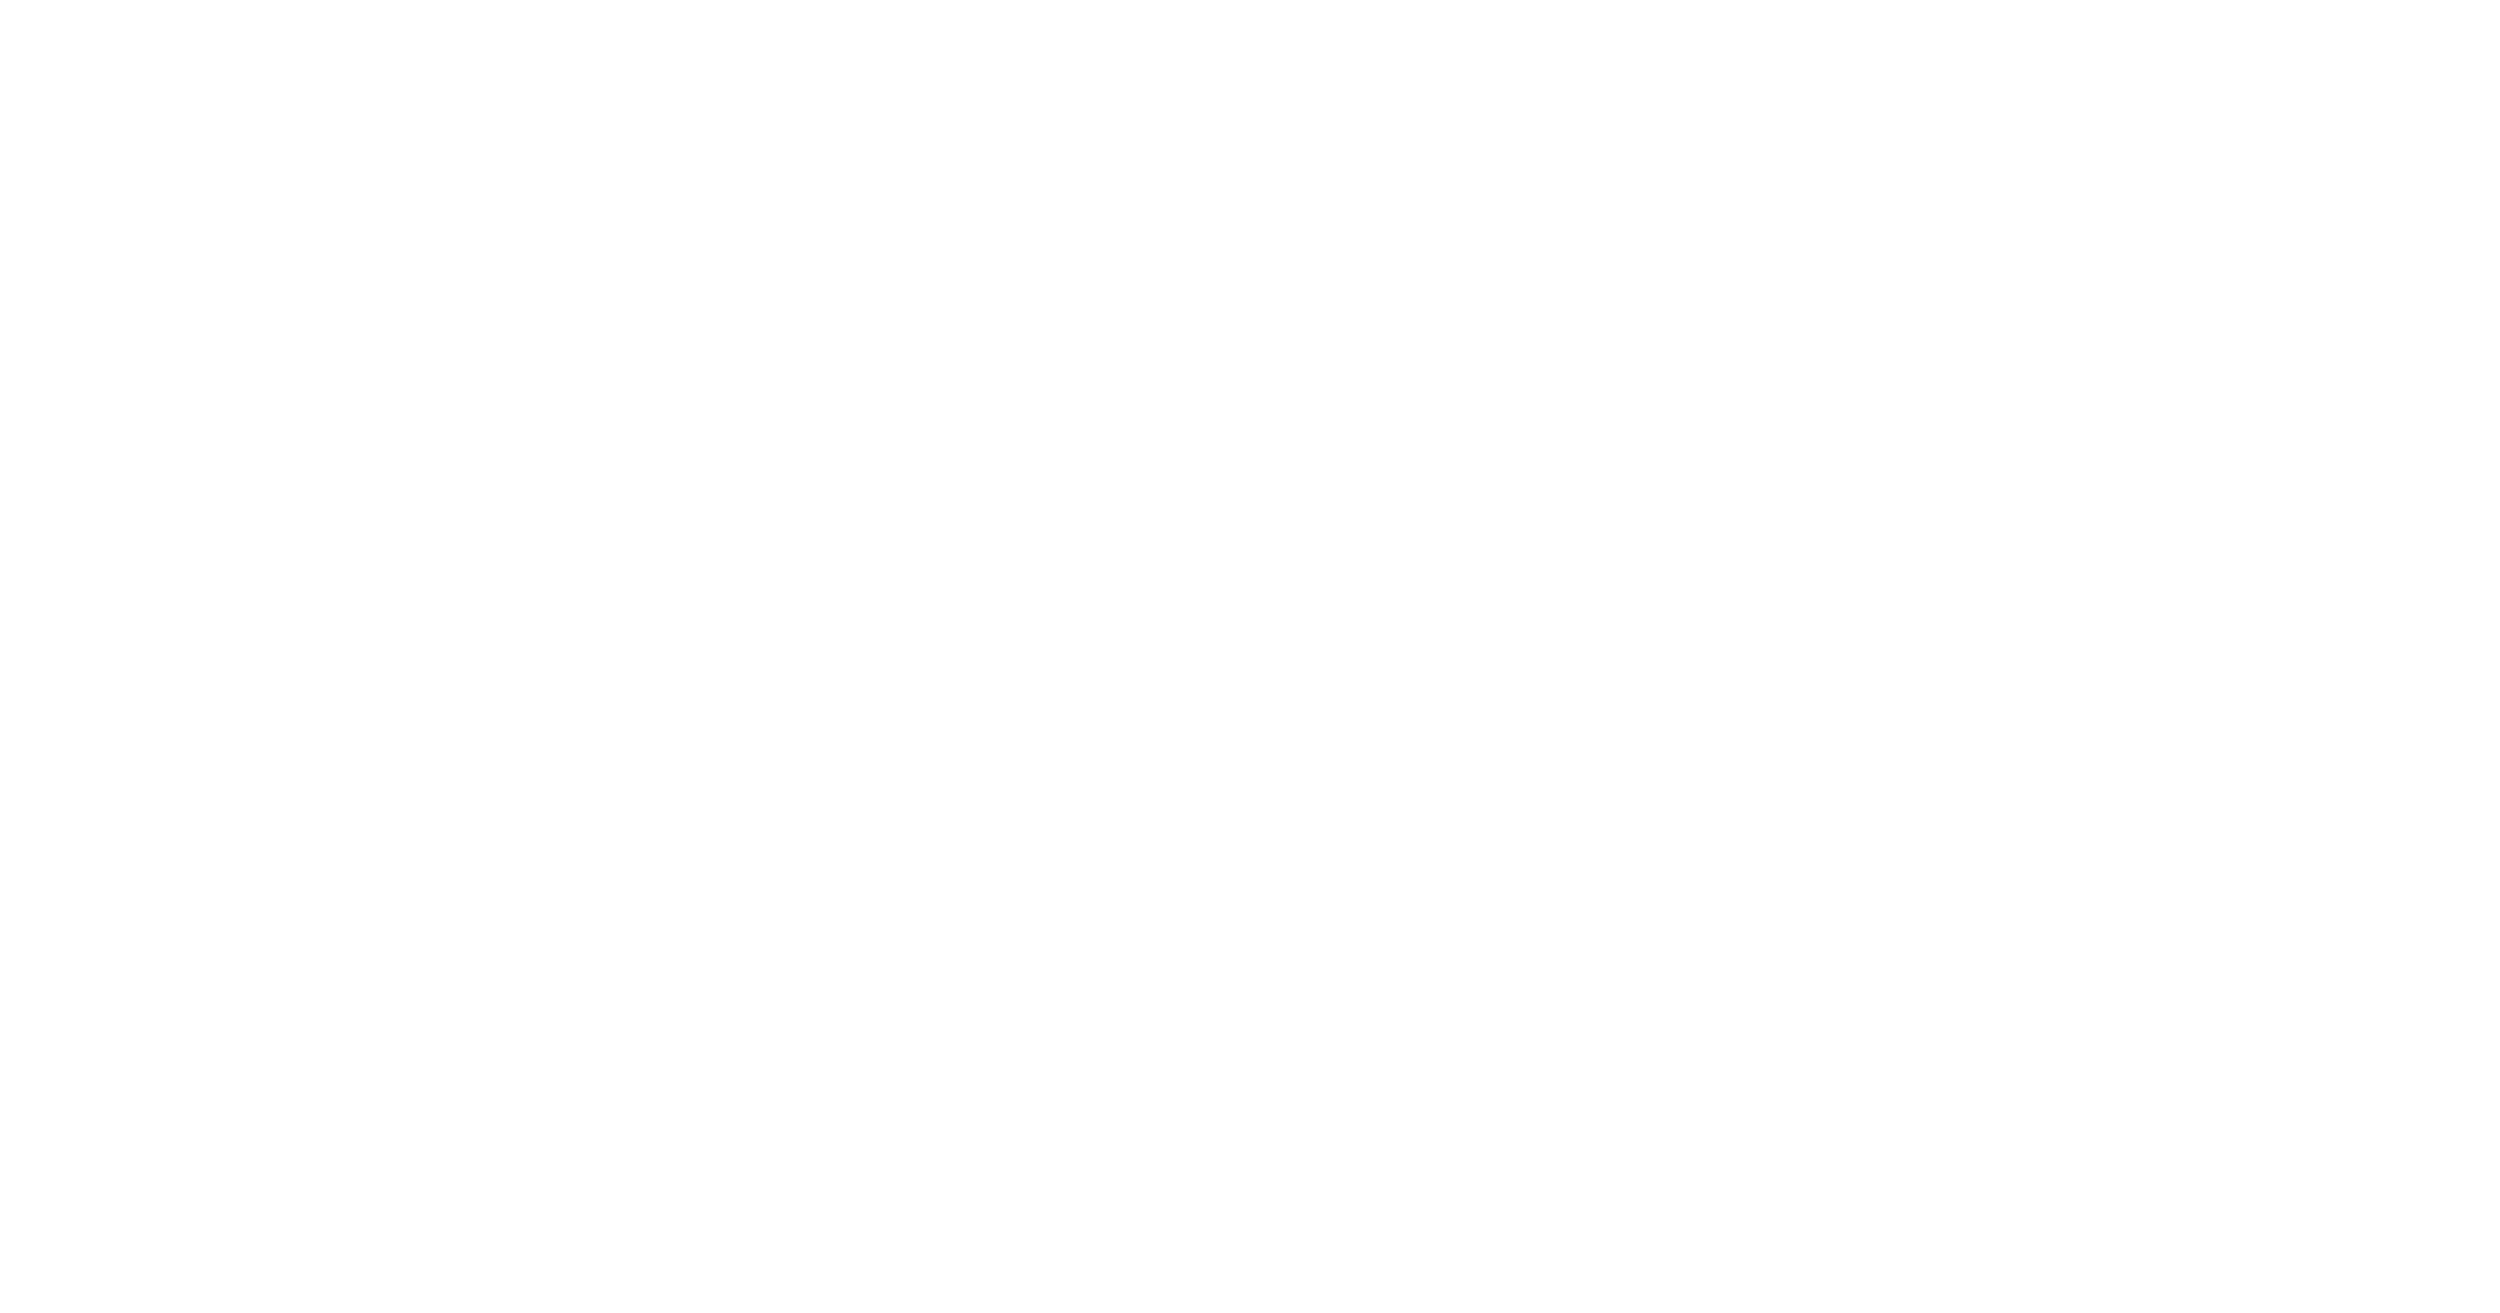 Poynton-Baptist-Church-Logo-Final-Layout-1-WHITE.png